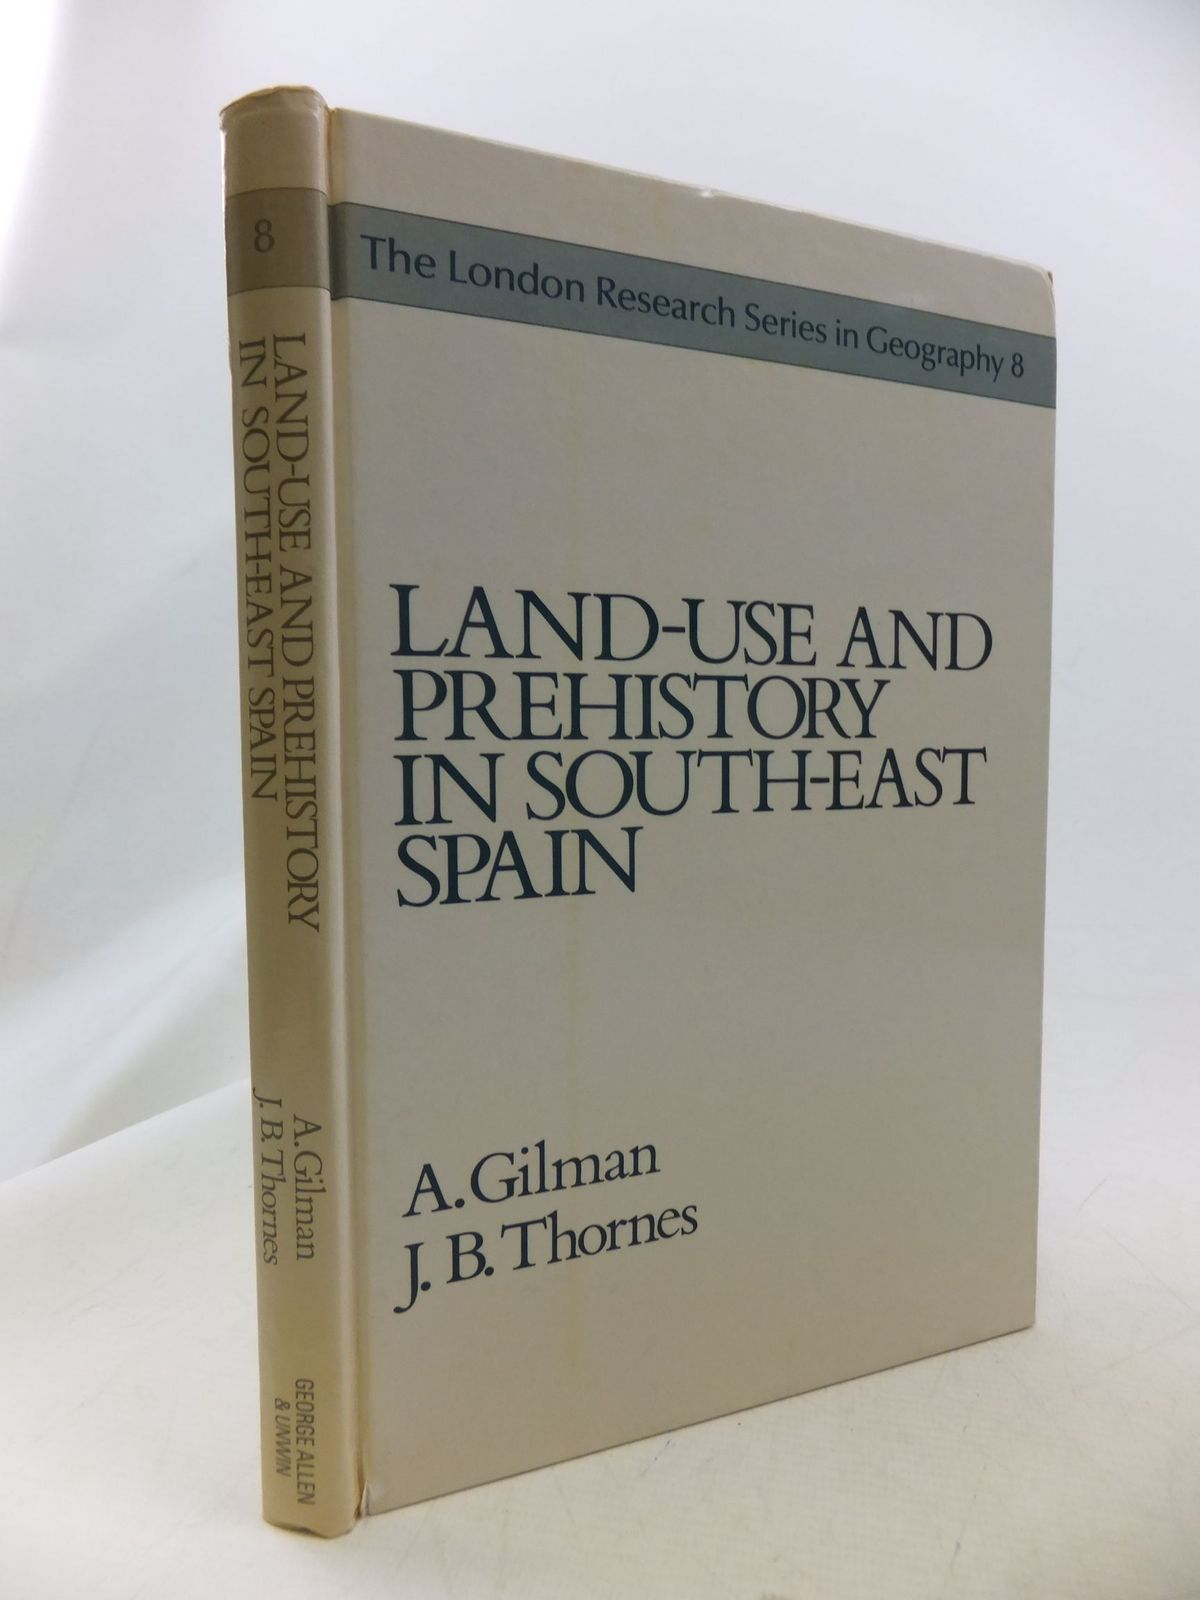 Photo of LAND-USE AND PREHISTORY IN SOUTH-EAST SPAIN written by Gilman, A.<br />Thornes, J.B. published by George Allen & Unwin (STOCK CODE: 1710903)  for sale by Stella & Rose's Books